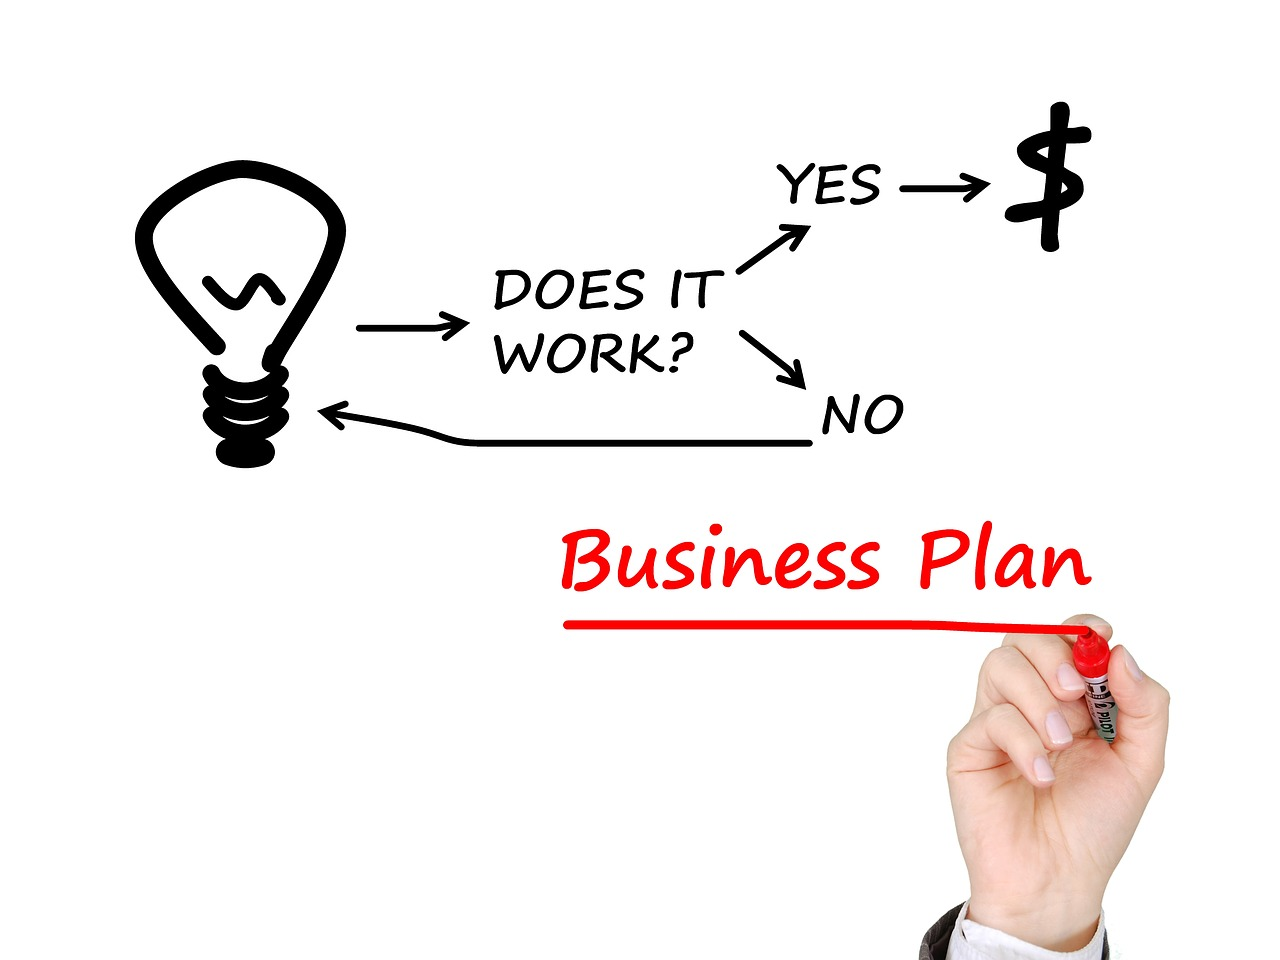 business plan, business planning, lean startup